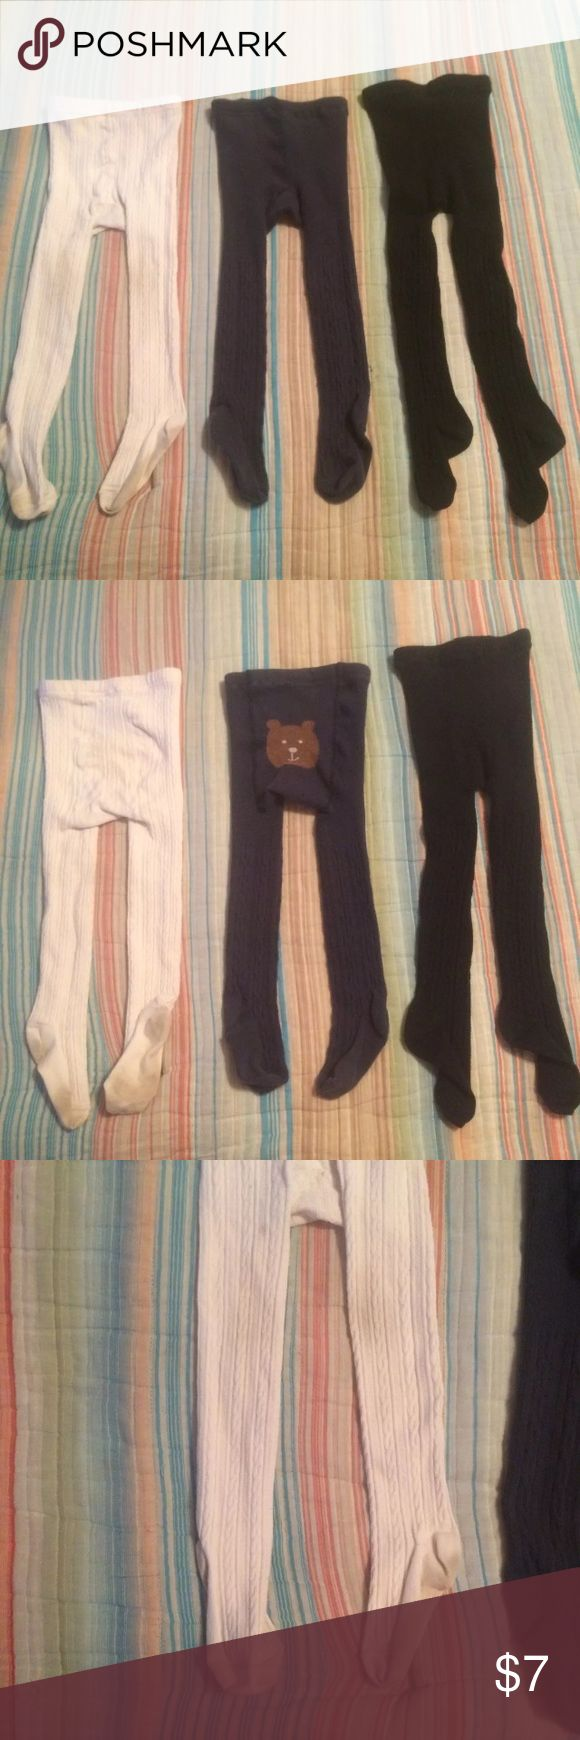 3pair Toddler Tights 2-3 Years, Gap & Old Navy 3pair Toddler Tights 2-3 Years, Gap & Old Navy, light discoloration on legs of white pair and on bottoms of feet. Accessories Socks & Tights